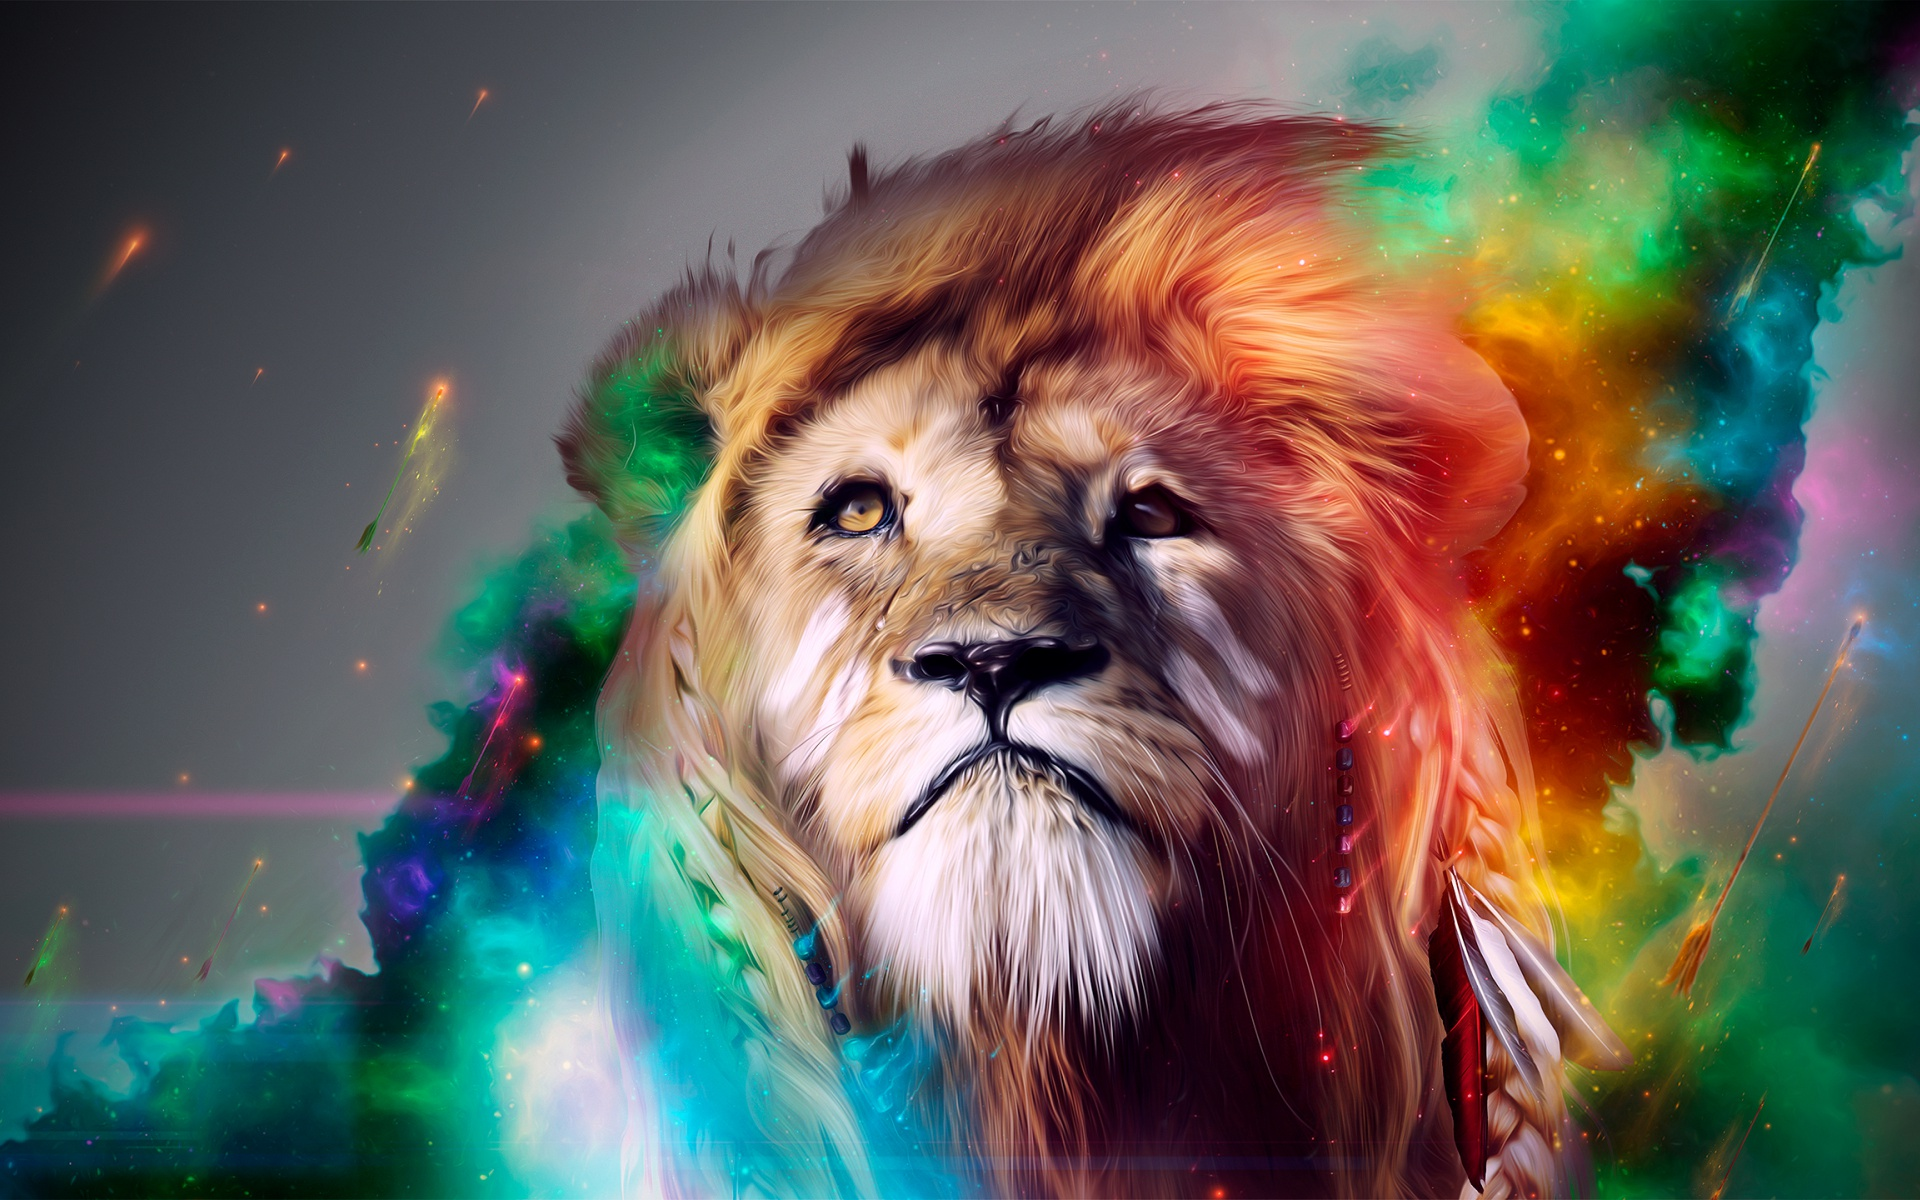 Lion Abstract Wallpapers HD Wallpapers 1920x1200